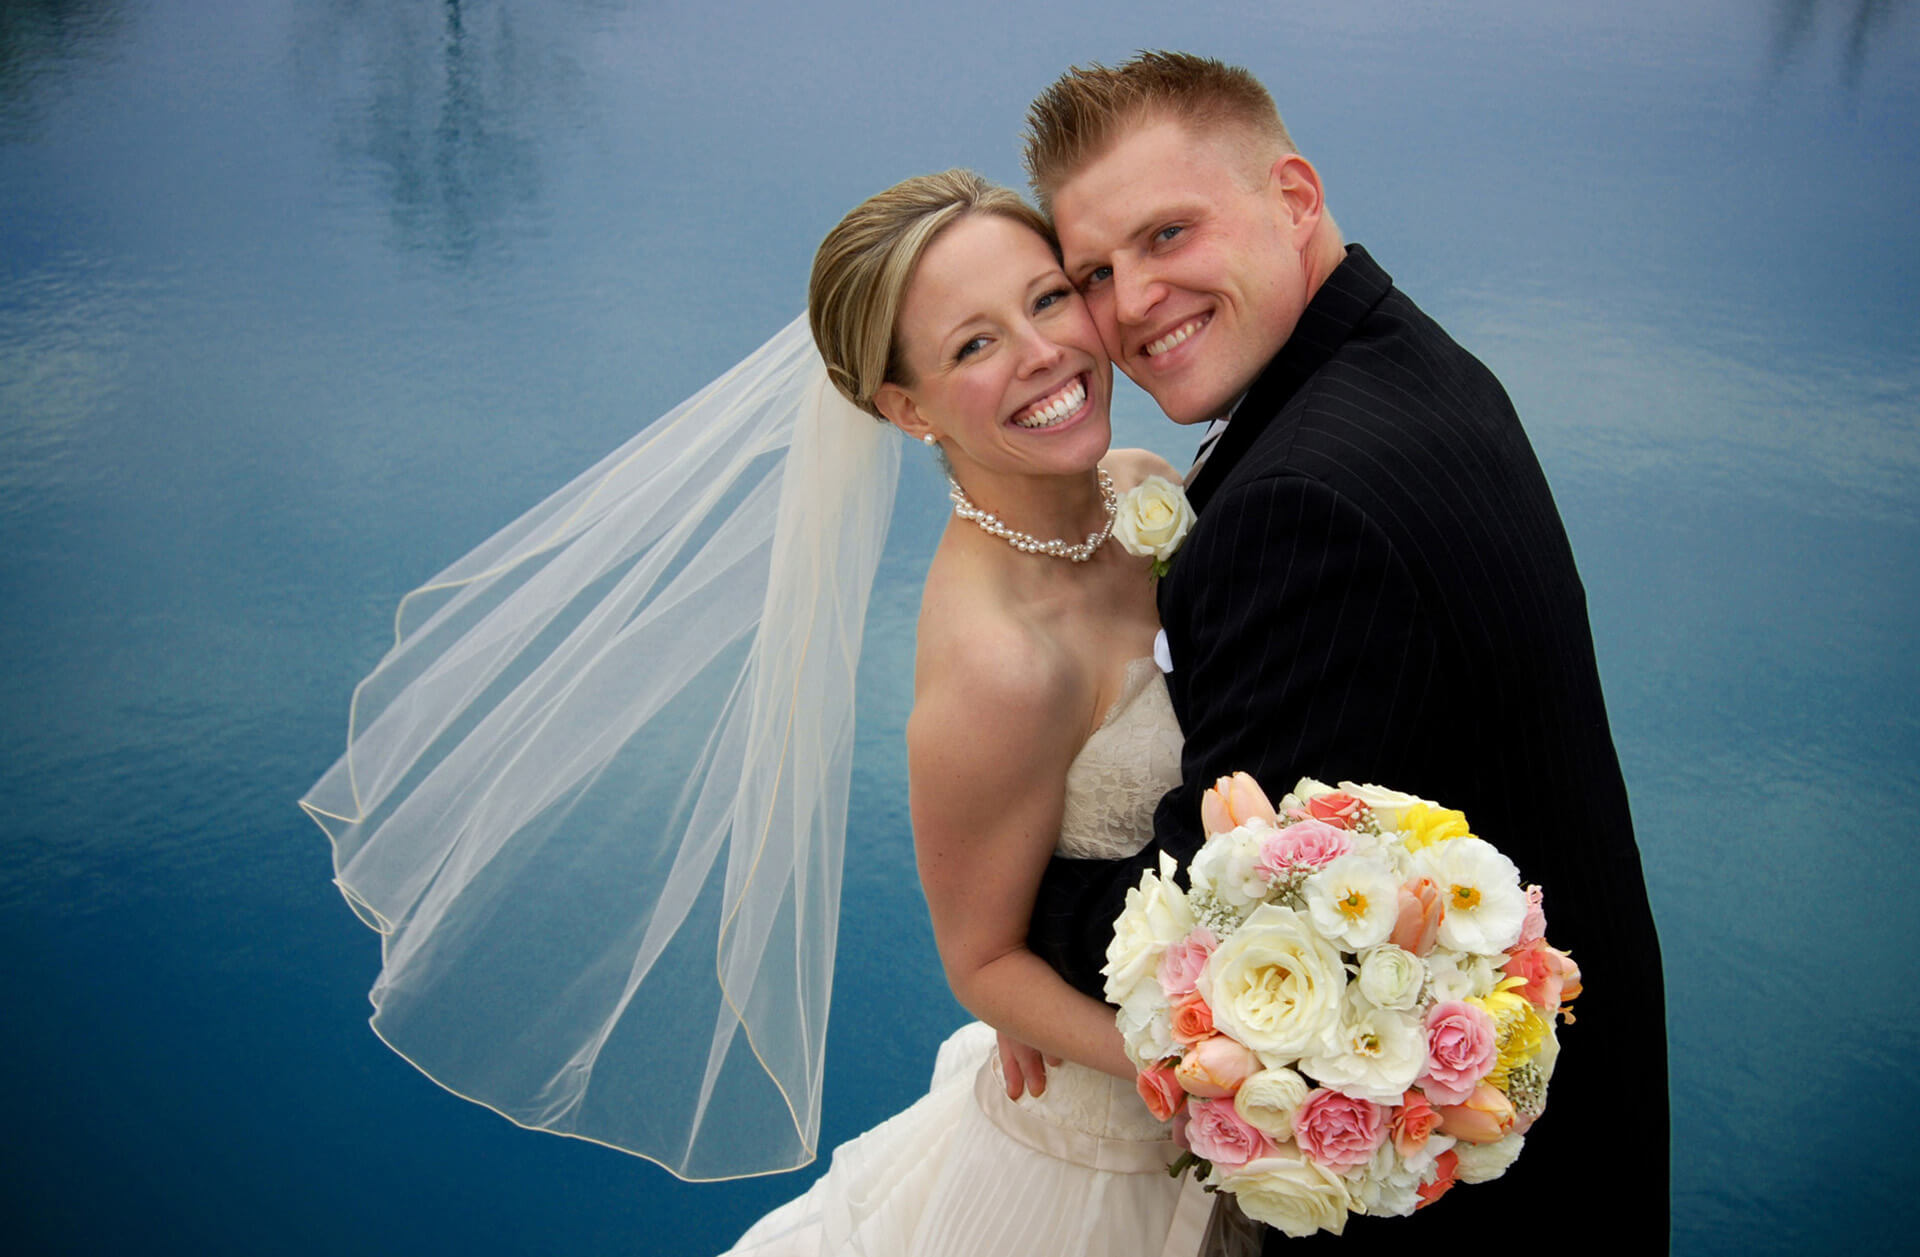 Michigan couple snuggle during a winter wedding in Grosse Pointe, Michigan.